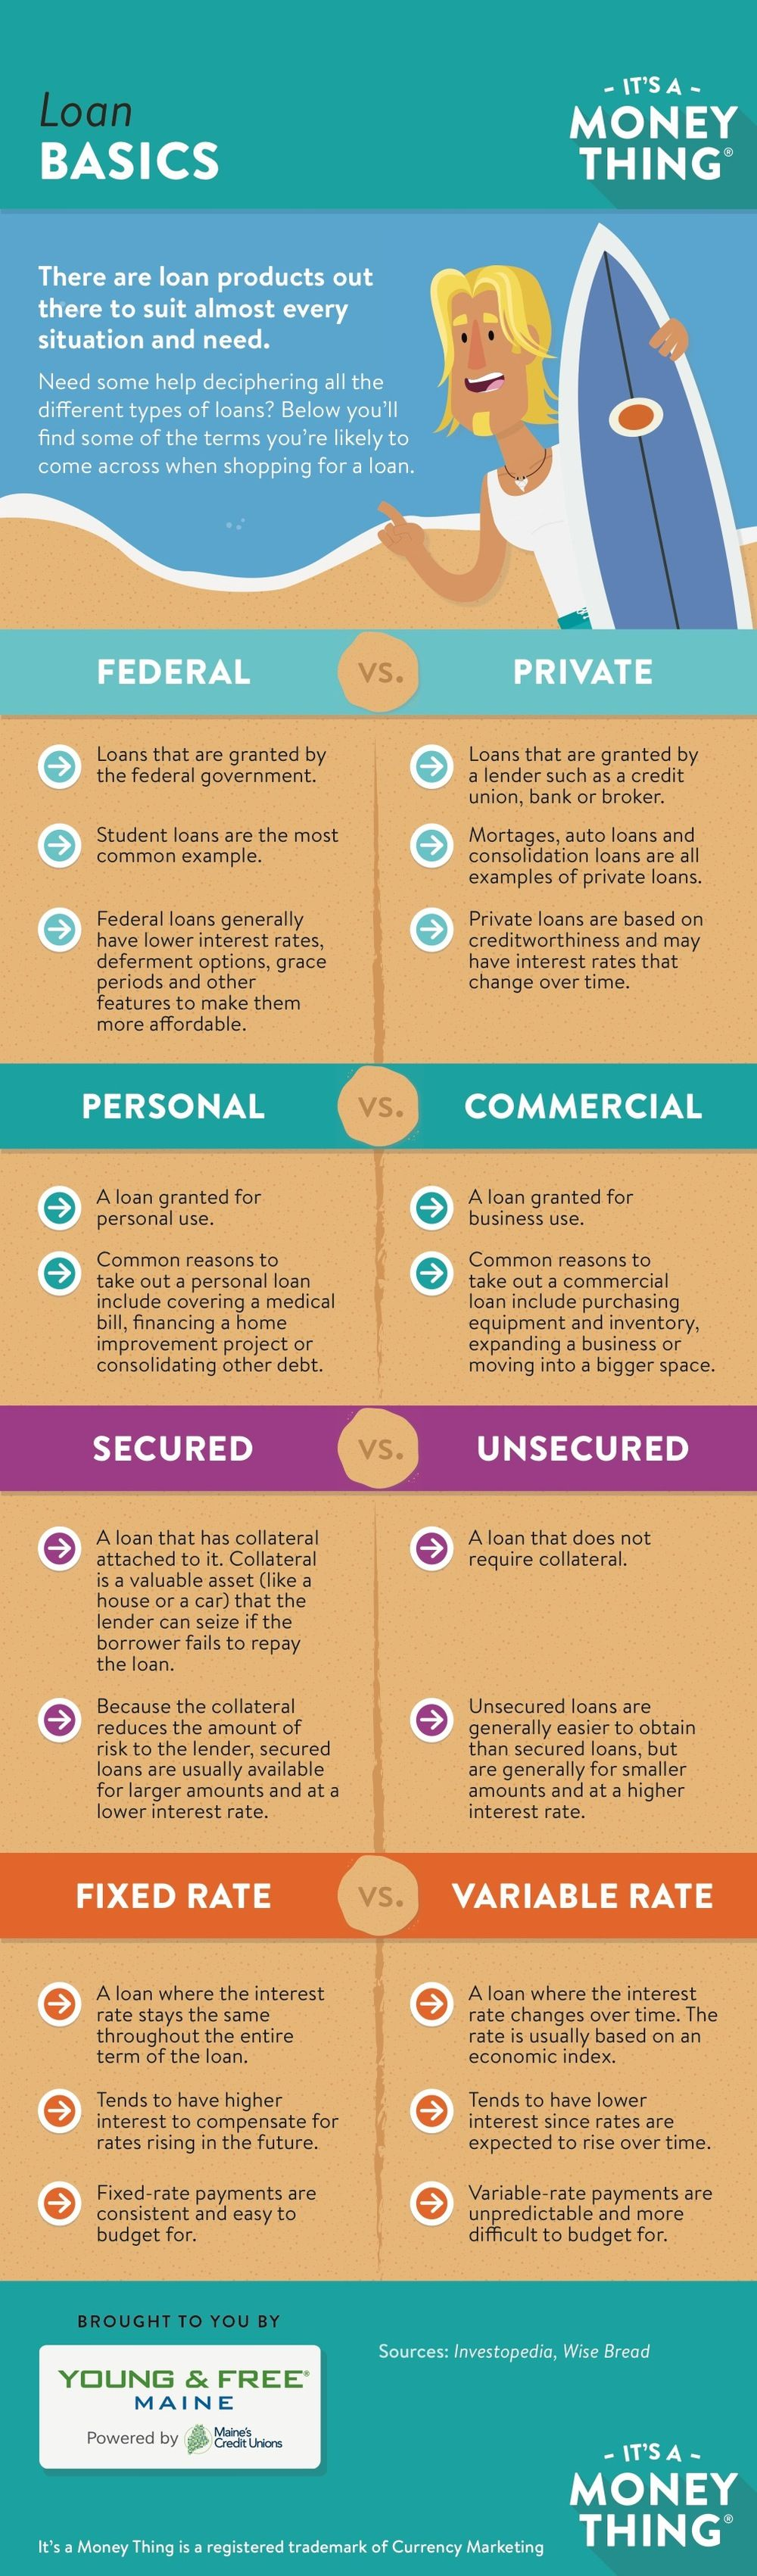 Loan Basics #Infographic